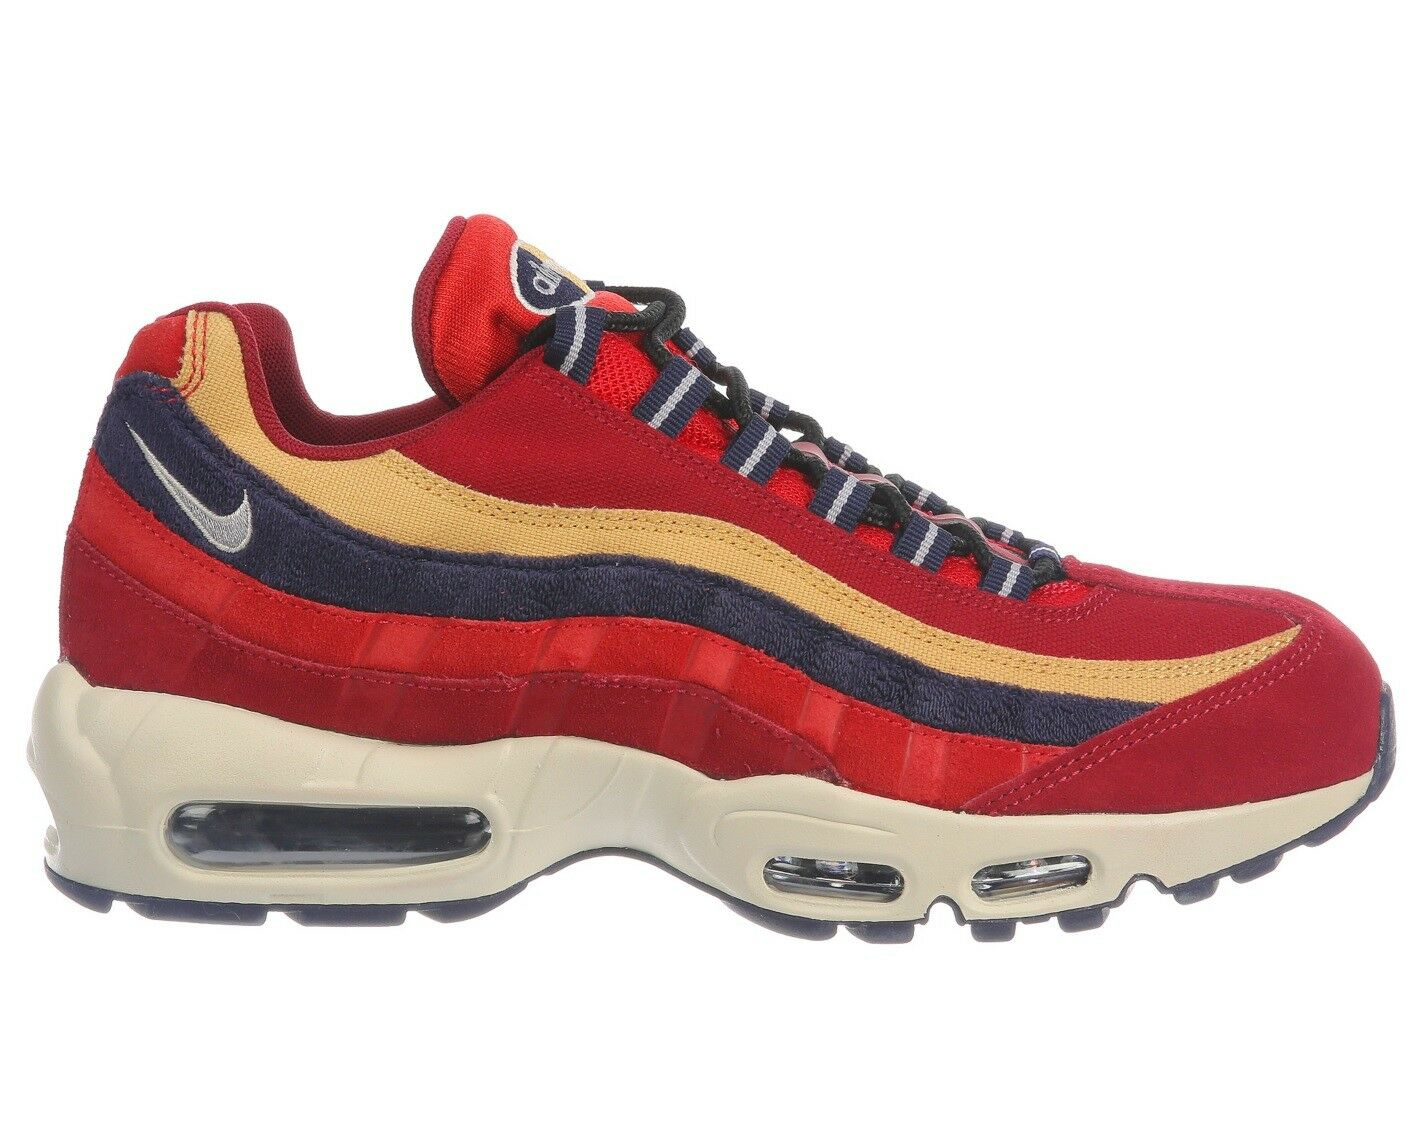 Nike Air Max 95 Premium Mens 538416-603 Red Purple Wheat Running Shoes Comfortable Cheap and beautiful fashion